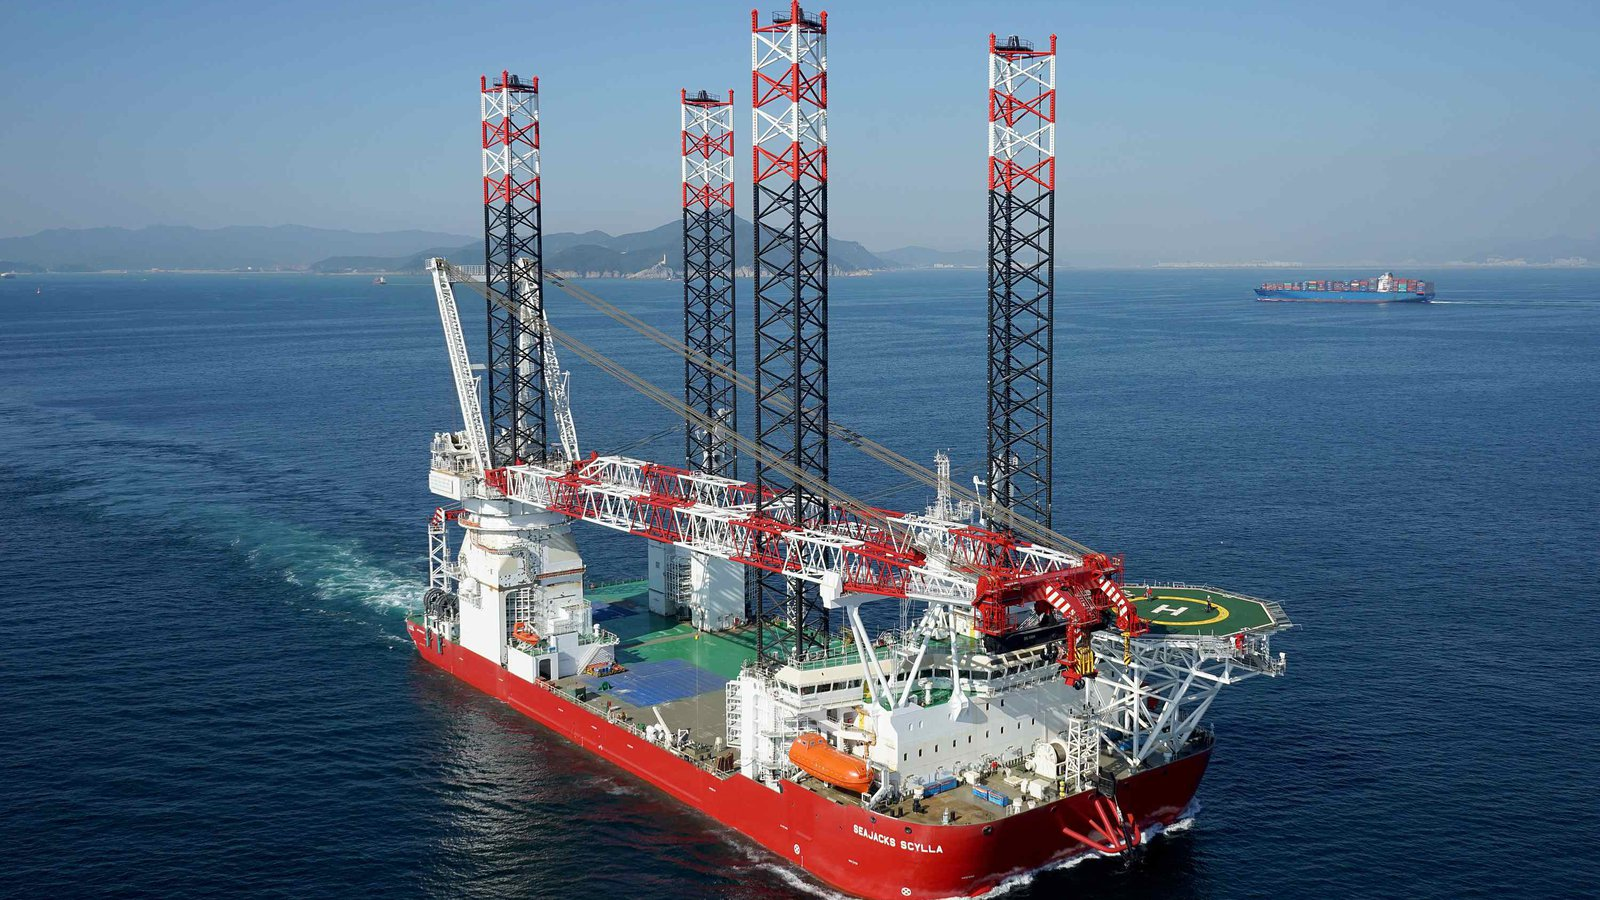 seajacks ship